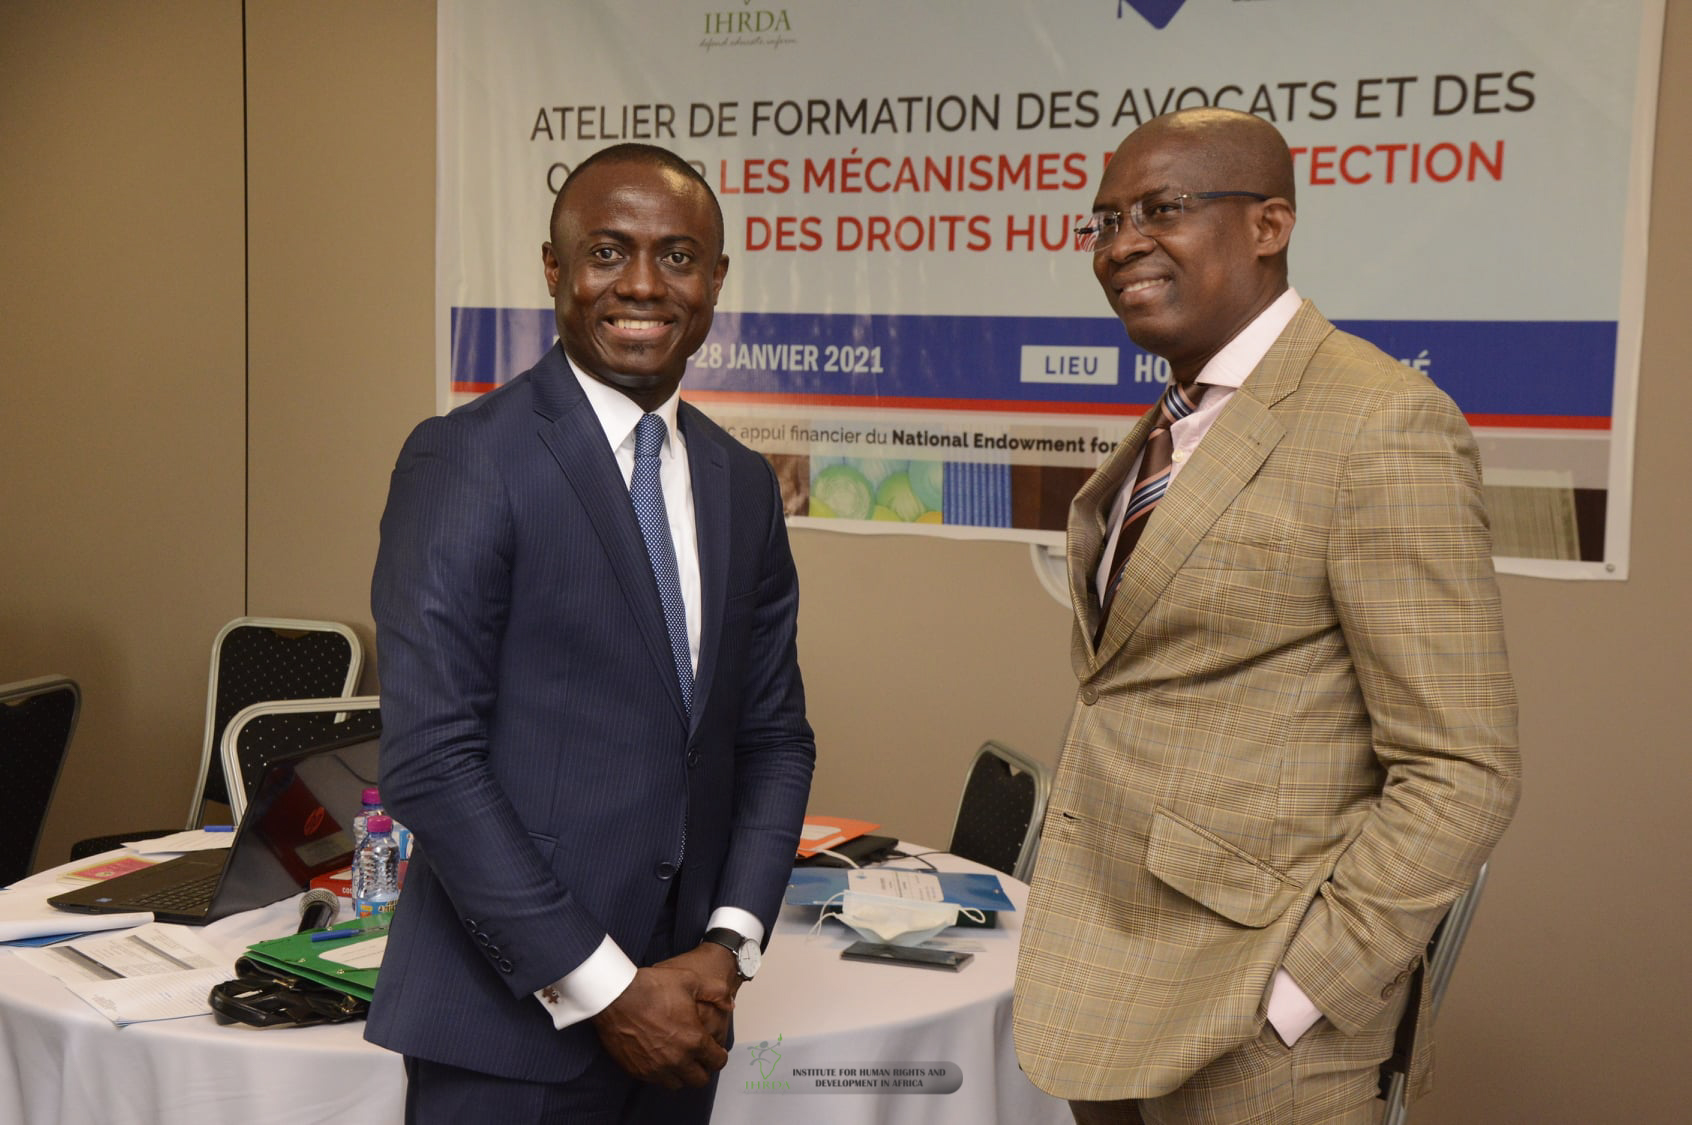 IHRDA and Centre de documentation et de formation sur les droits de l'homme (CDFDH) are organising a human rights strategic litigation training and case-identification workshop with about 25 lawyers and CSOs in Lome, Togo, 26-28 Jan 2021. Activity funded by NED.